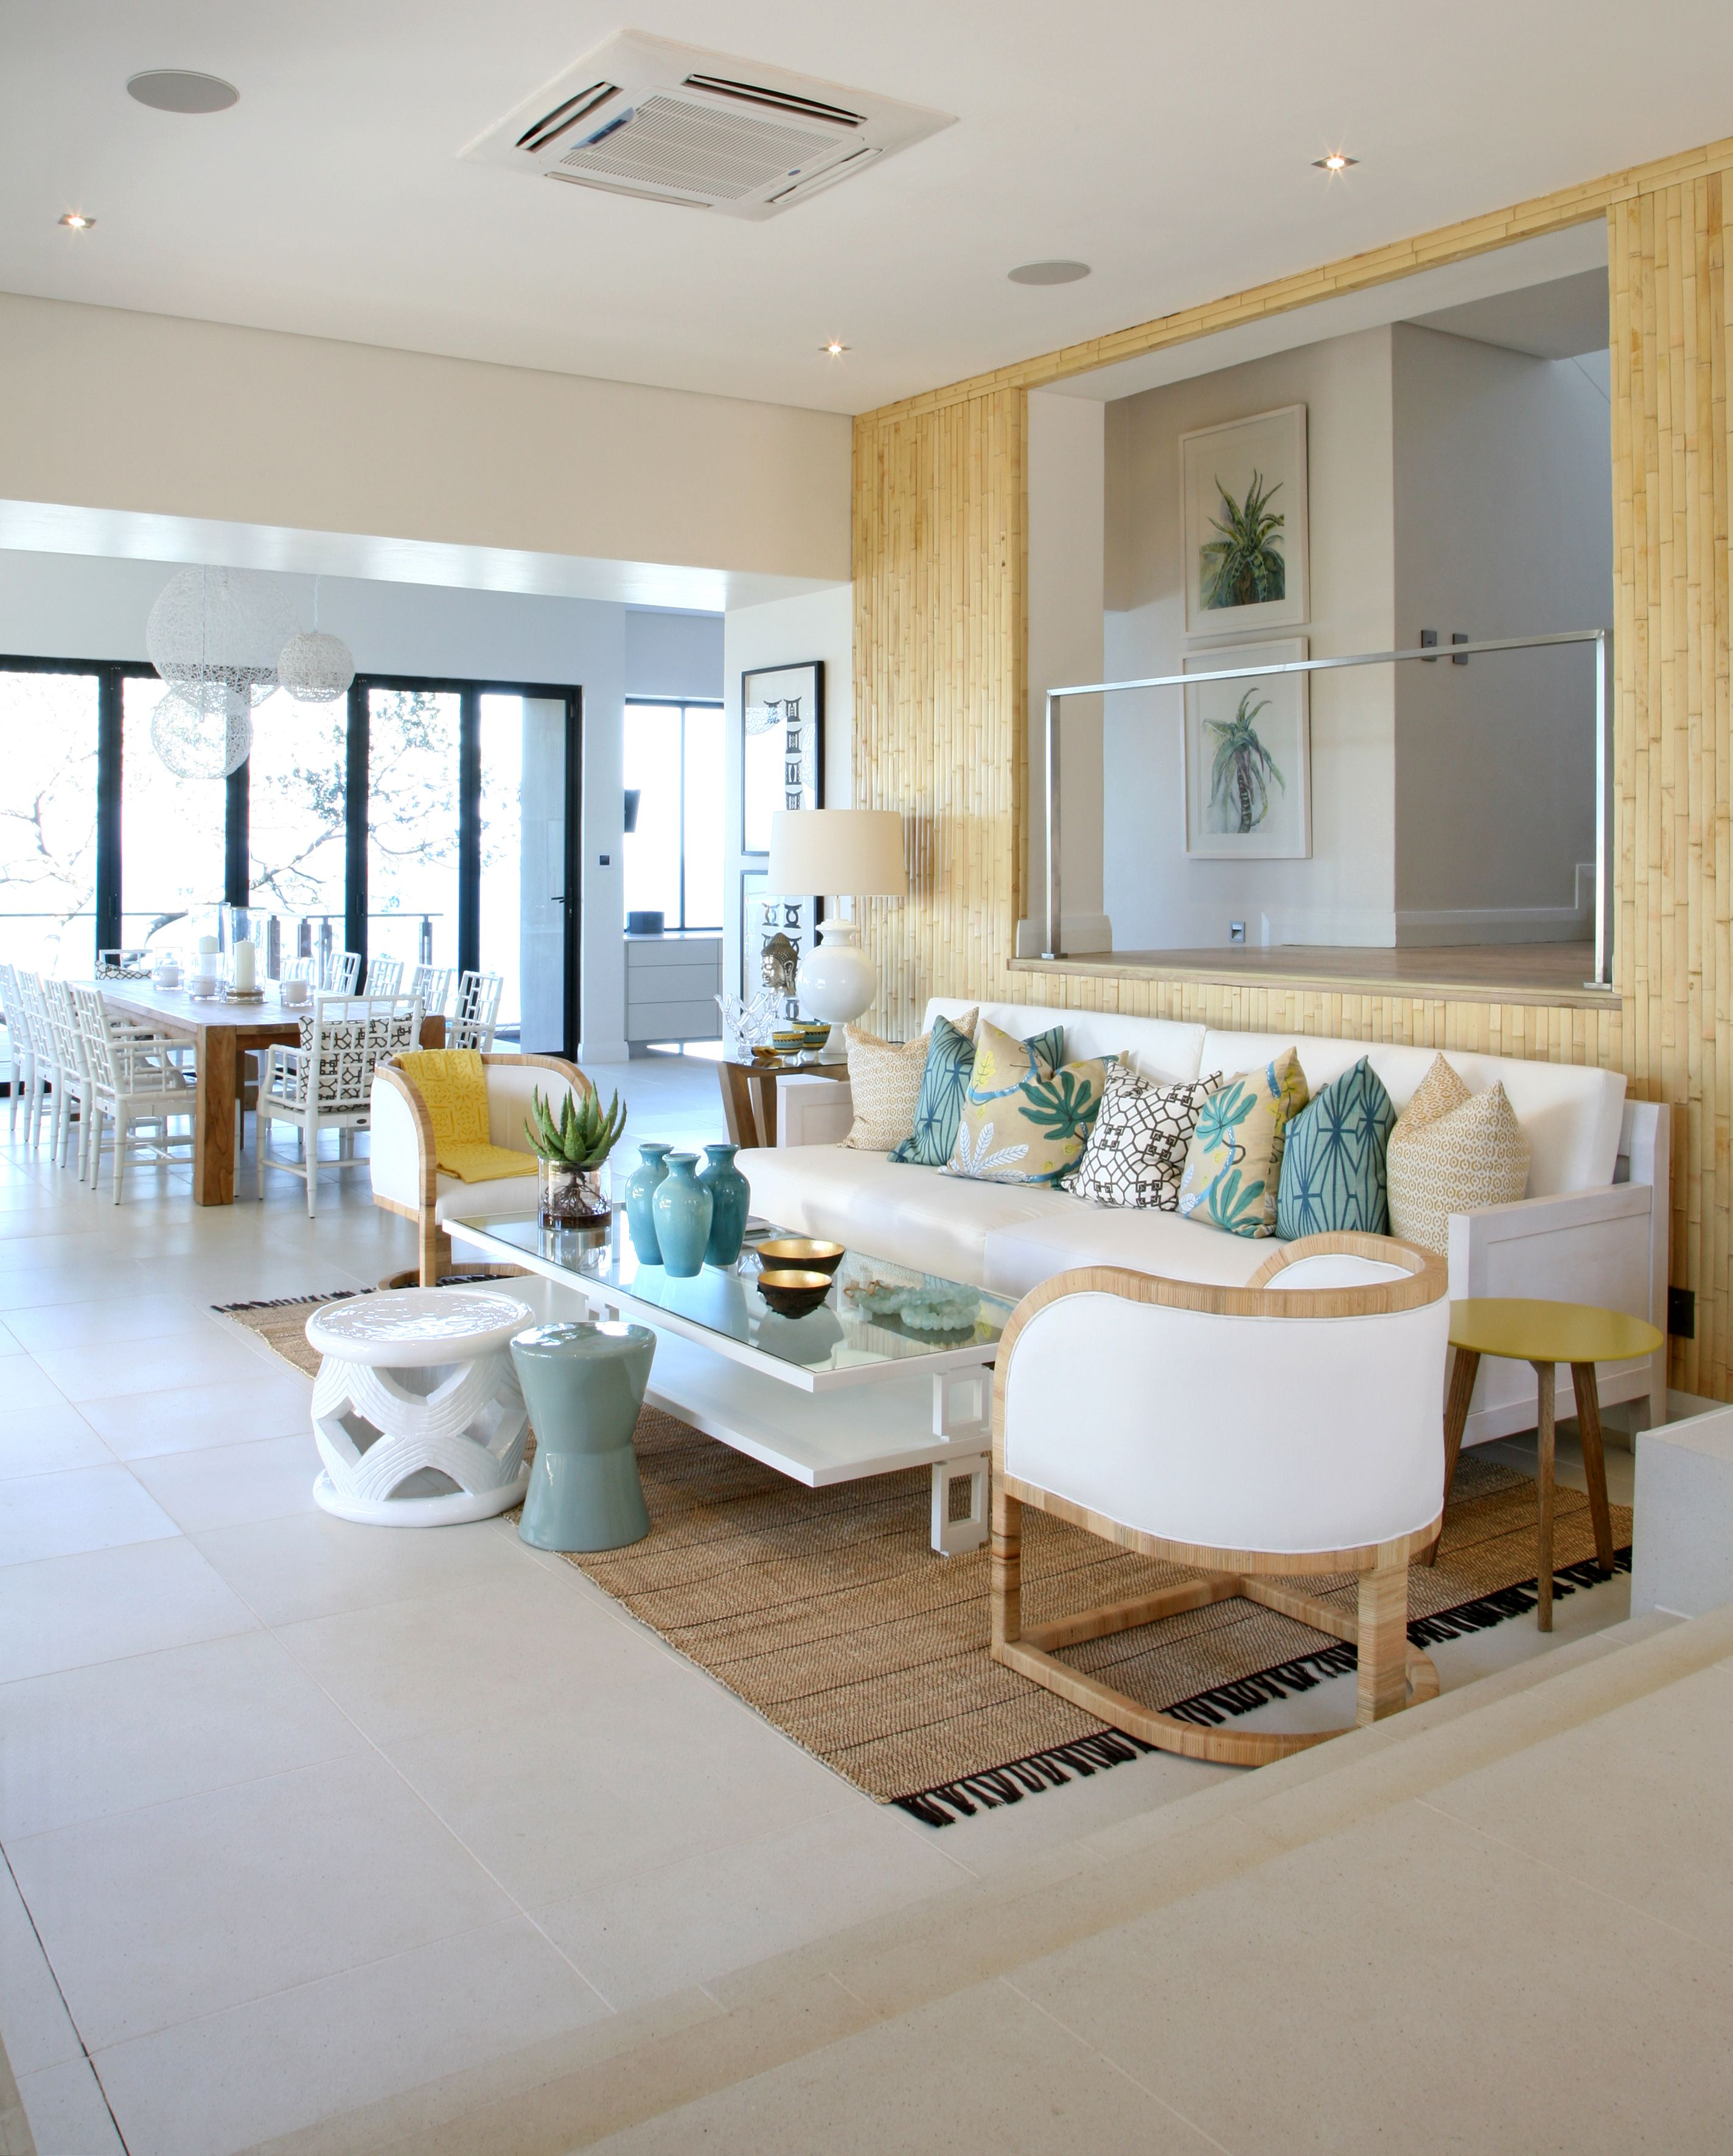 Pin By Michelle Schank On Home Decorating: Michele Throssell Interiors > Living Room > Bamboo